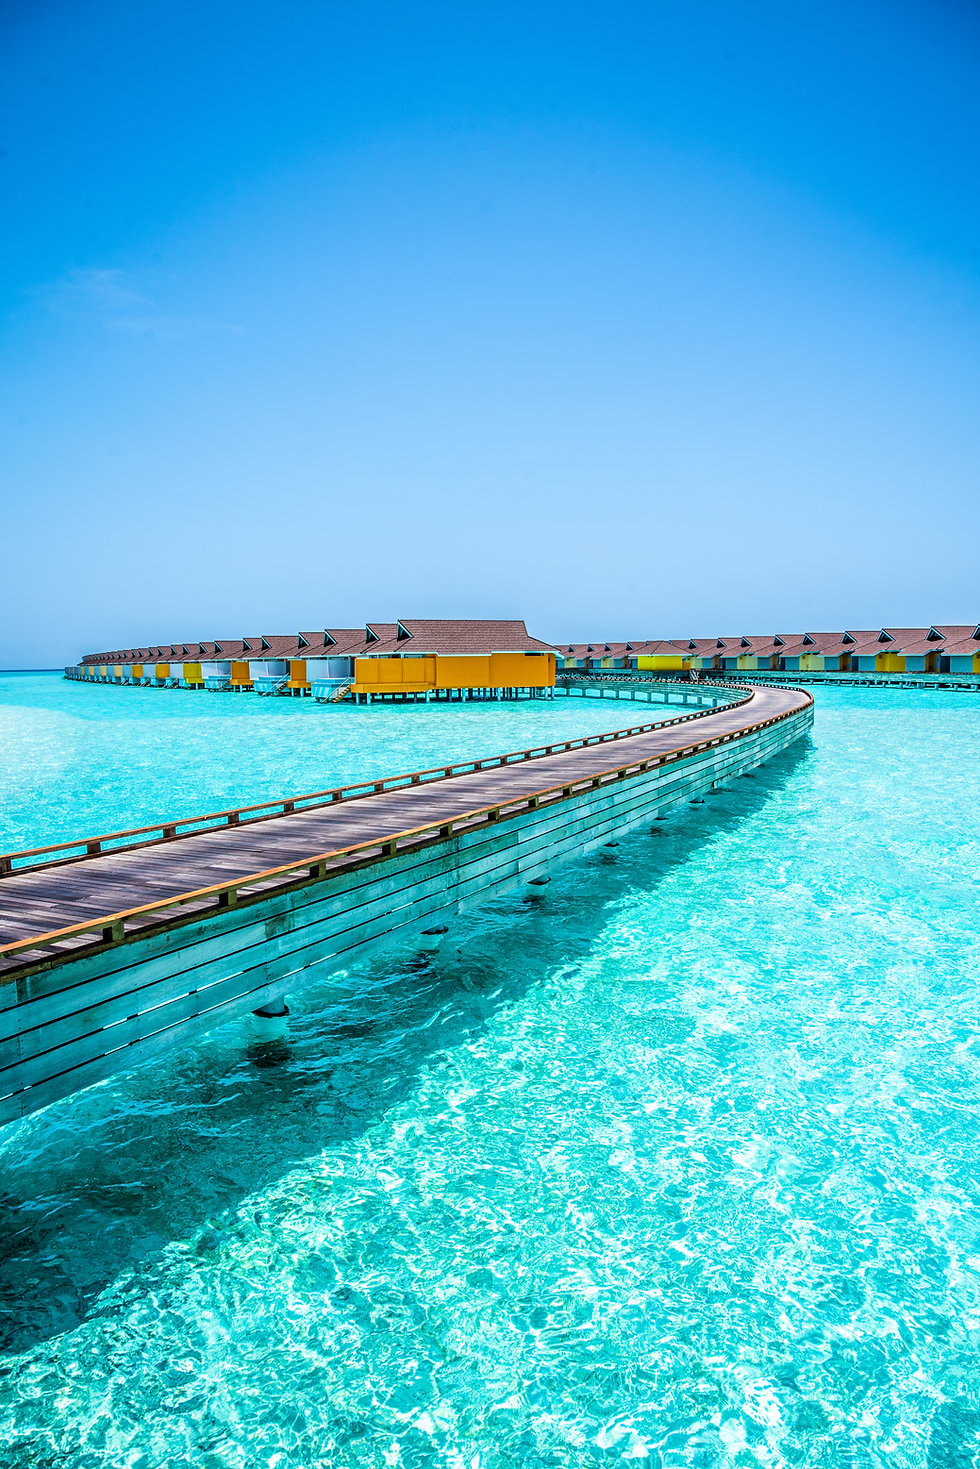 Image by Rayyu Maldives photographer